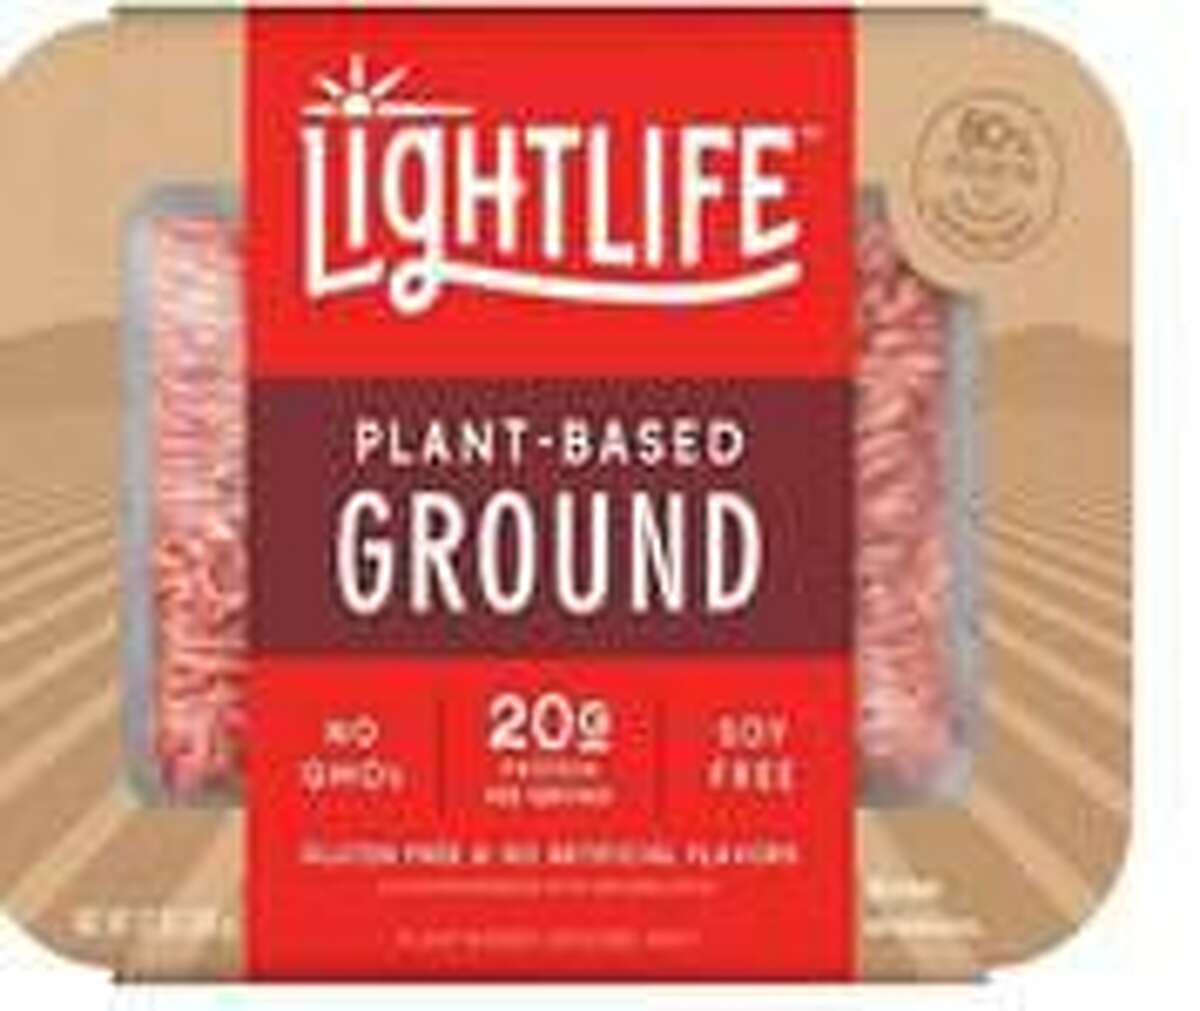 A plant-based meat substitute for ground beef that is sold at Stop & Shop stores.